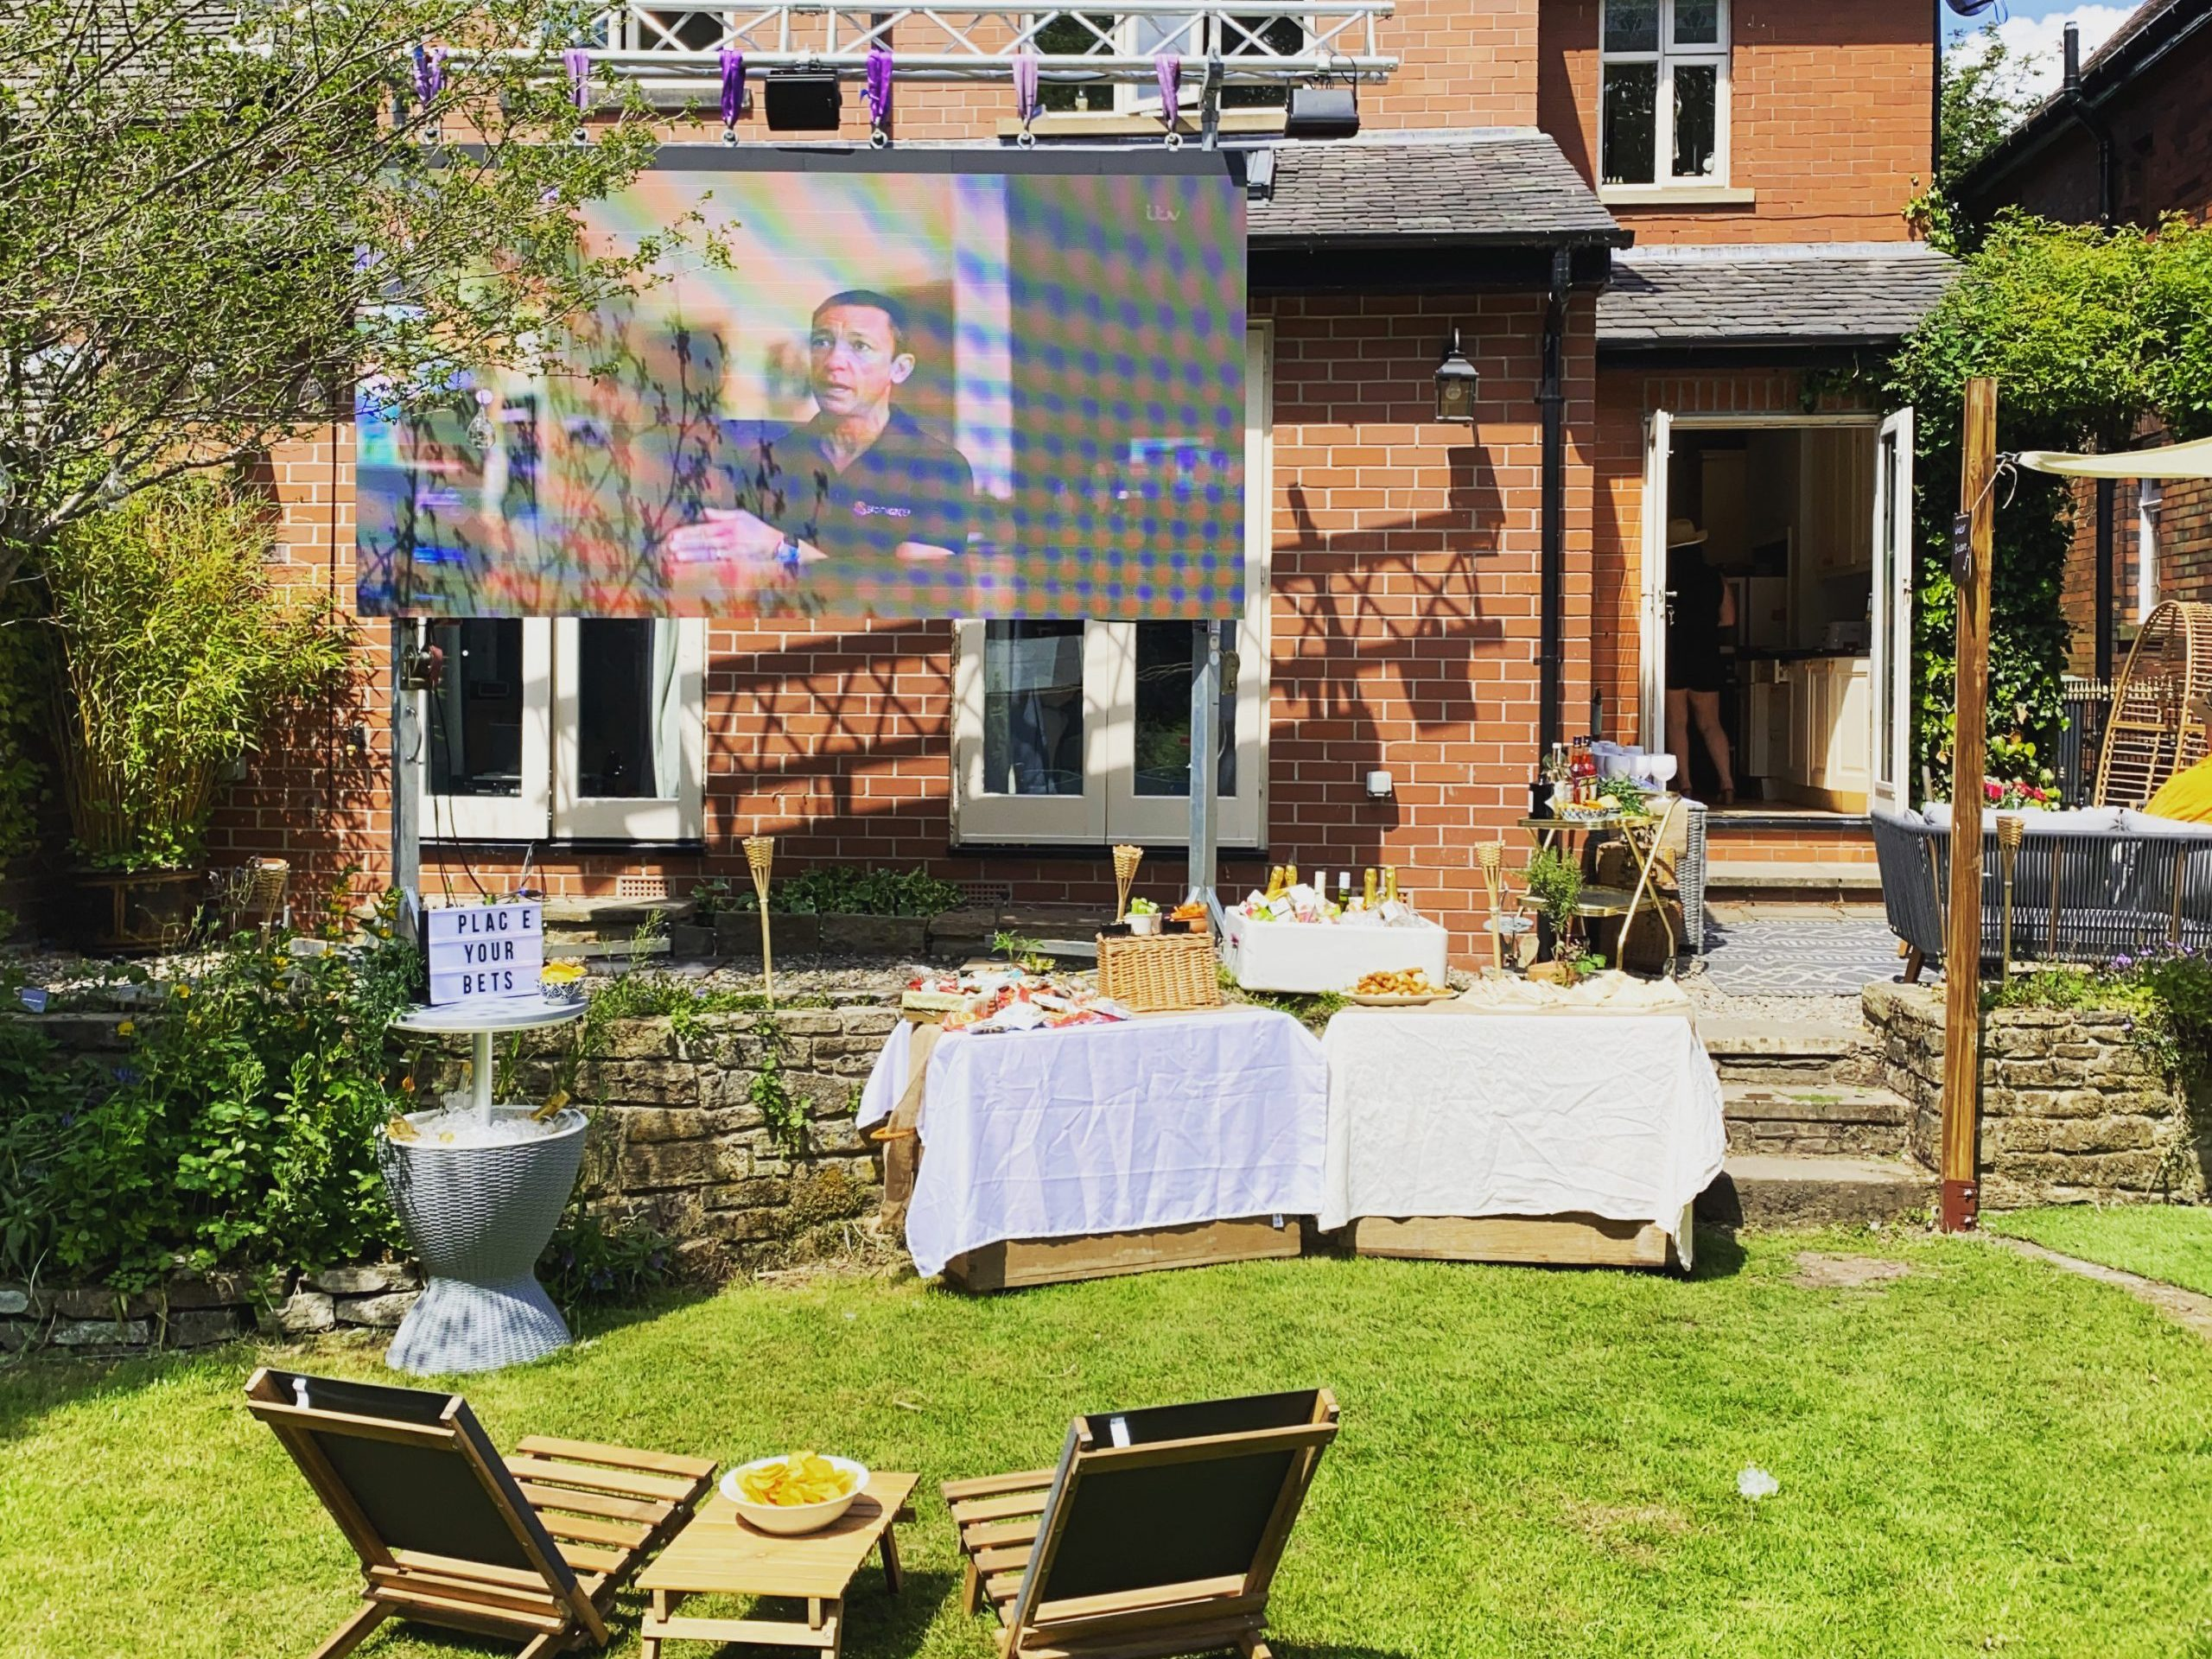 Garden Party with 3m LED Outdoor Screen